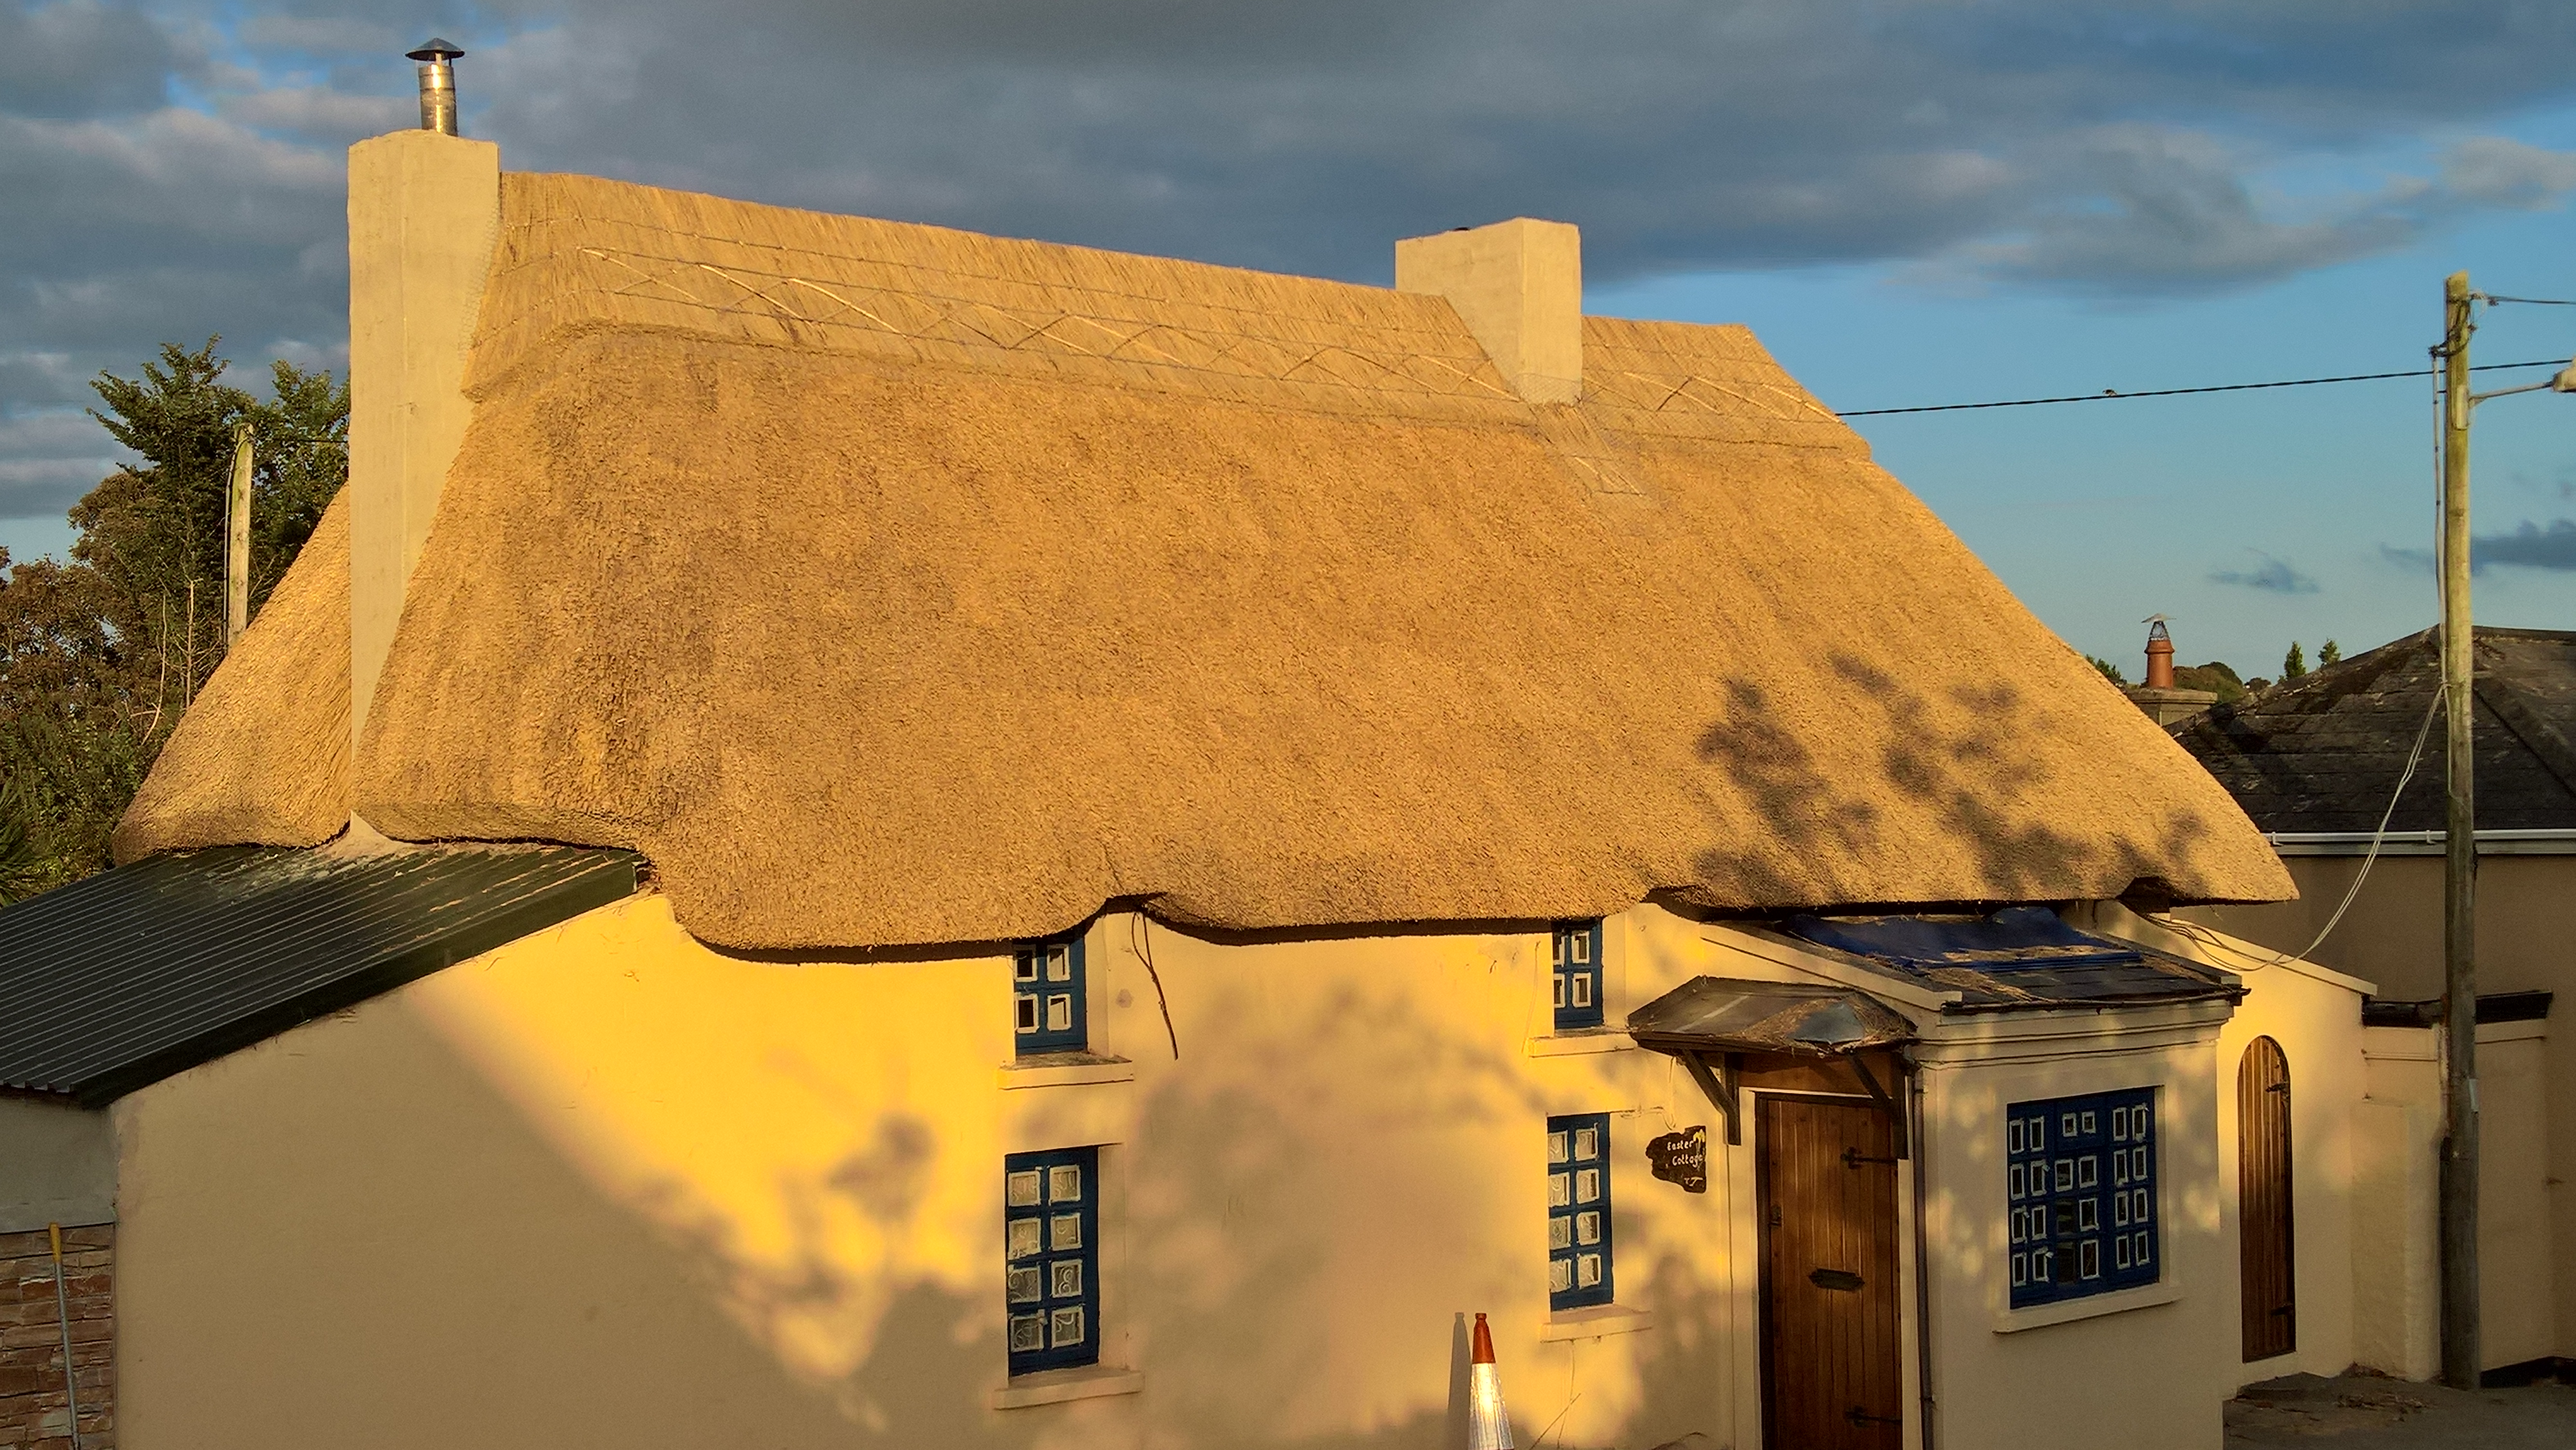 Thatched Cottages of Ireland